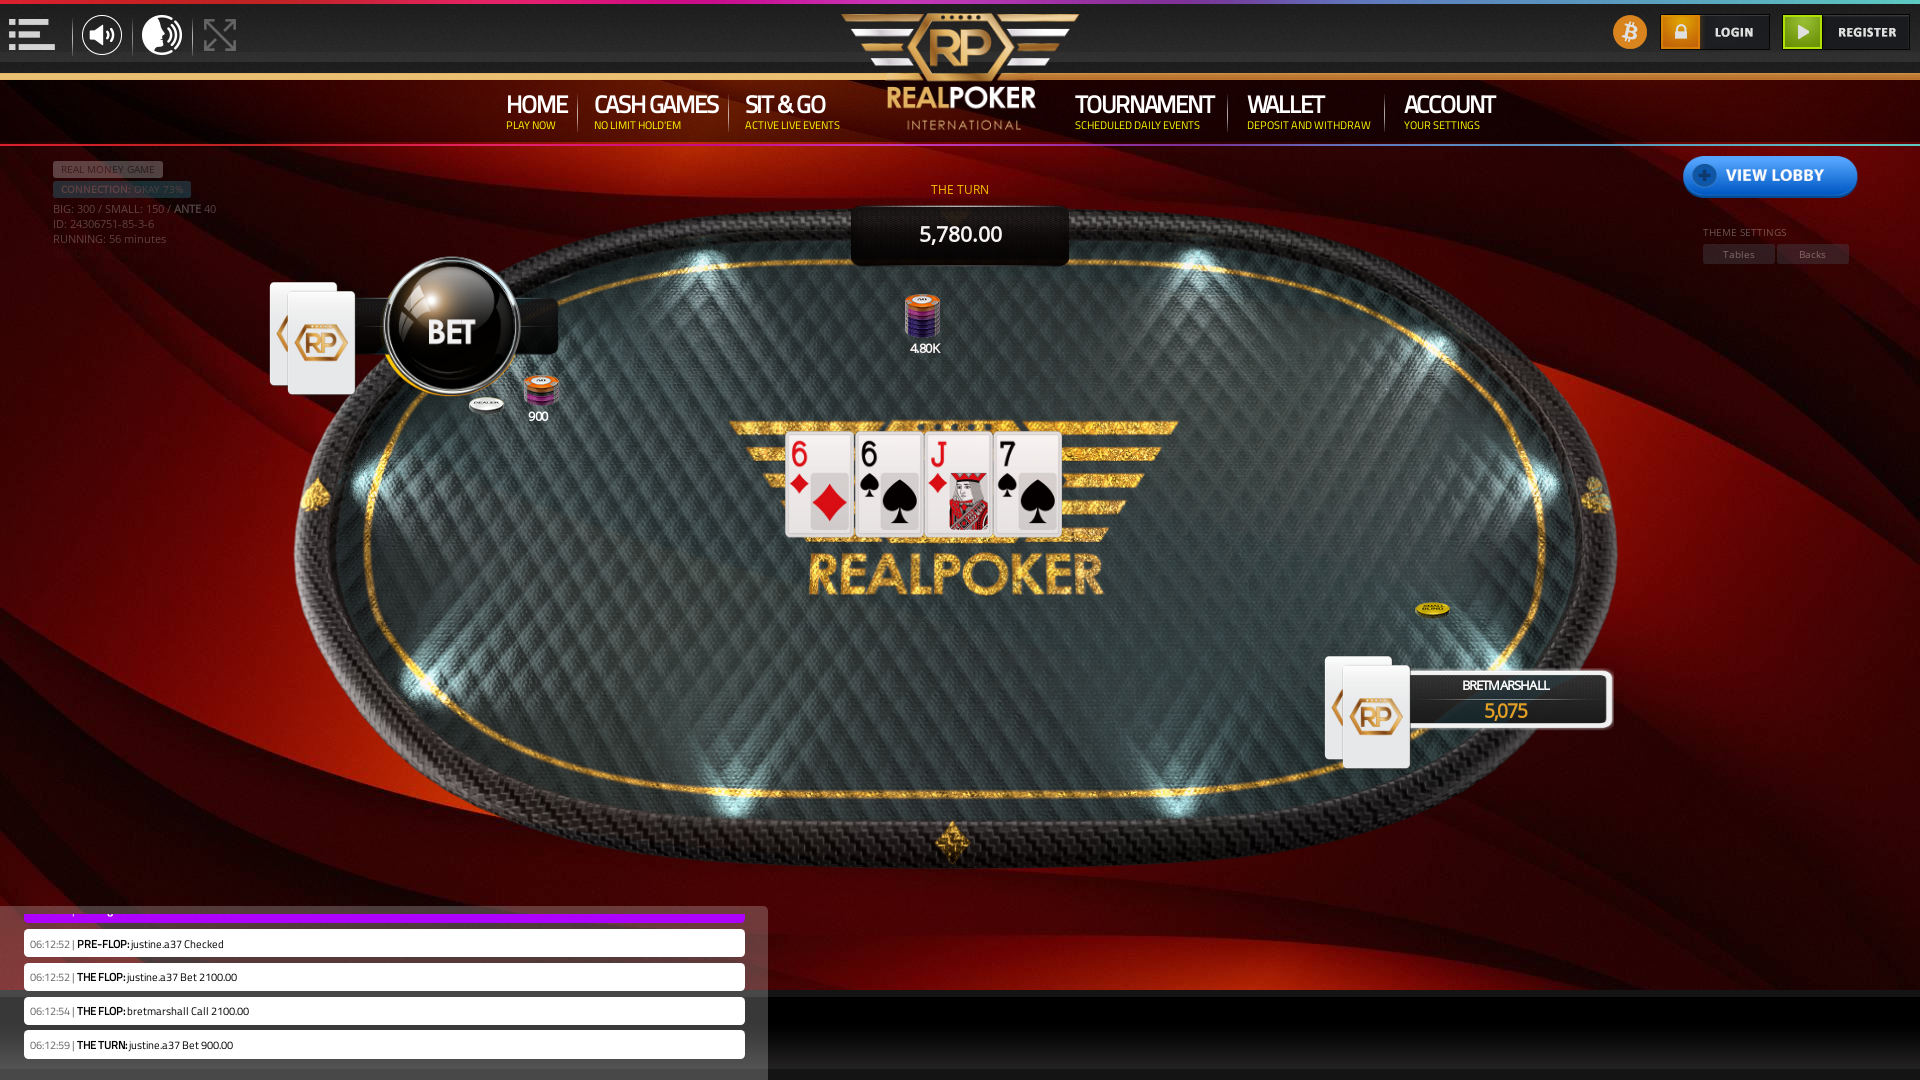 online poker on a 10 player table in the 56th minute match up